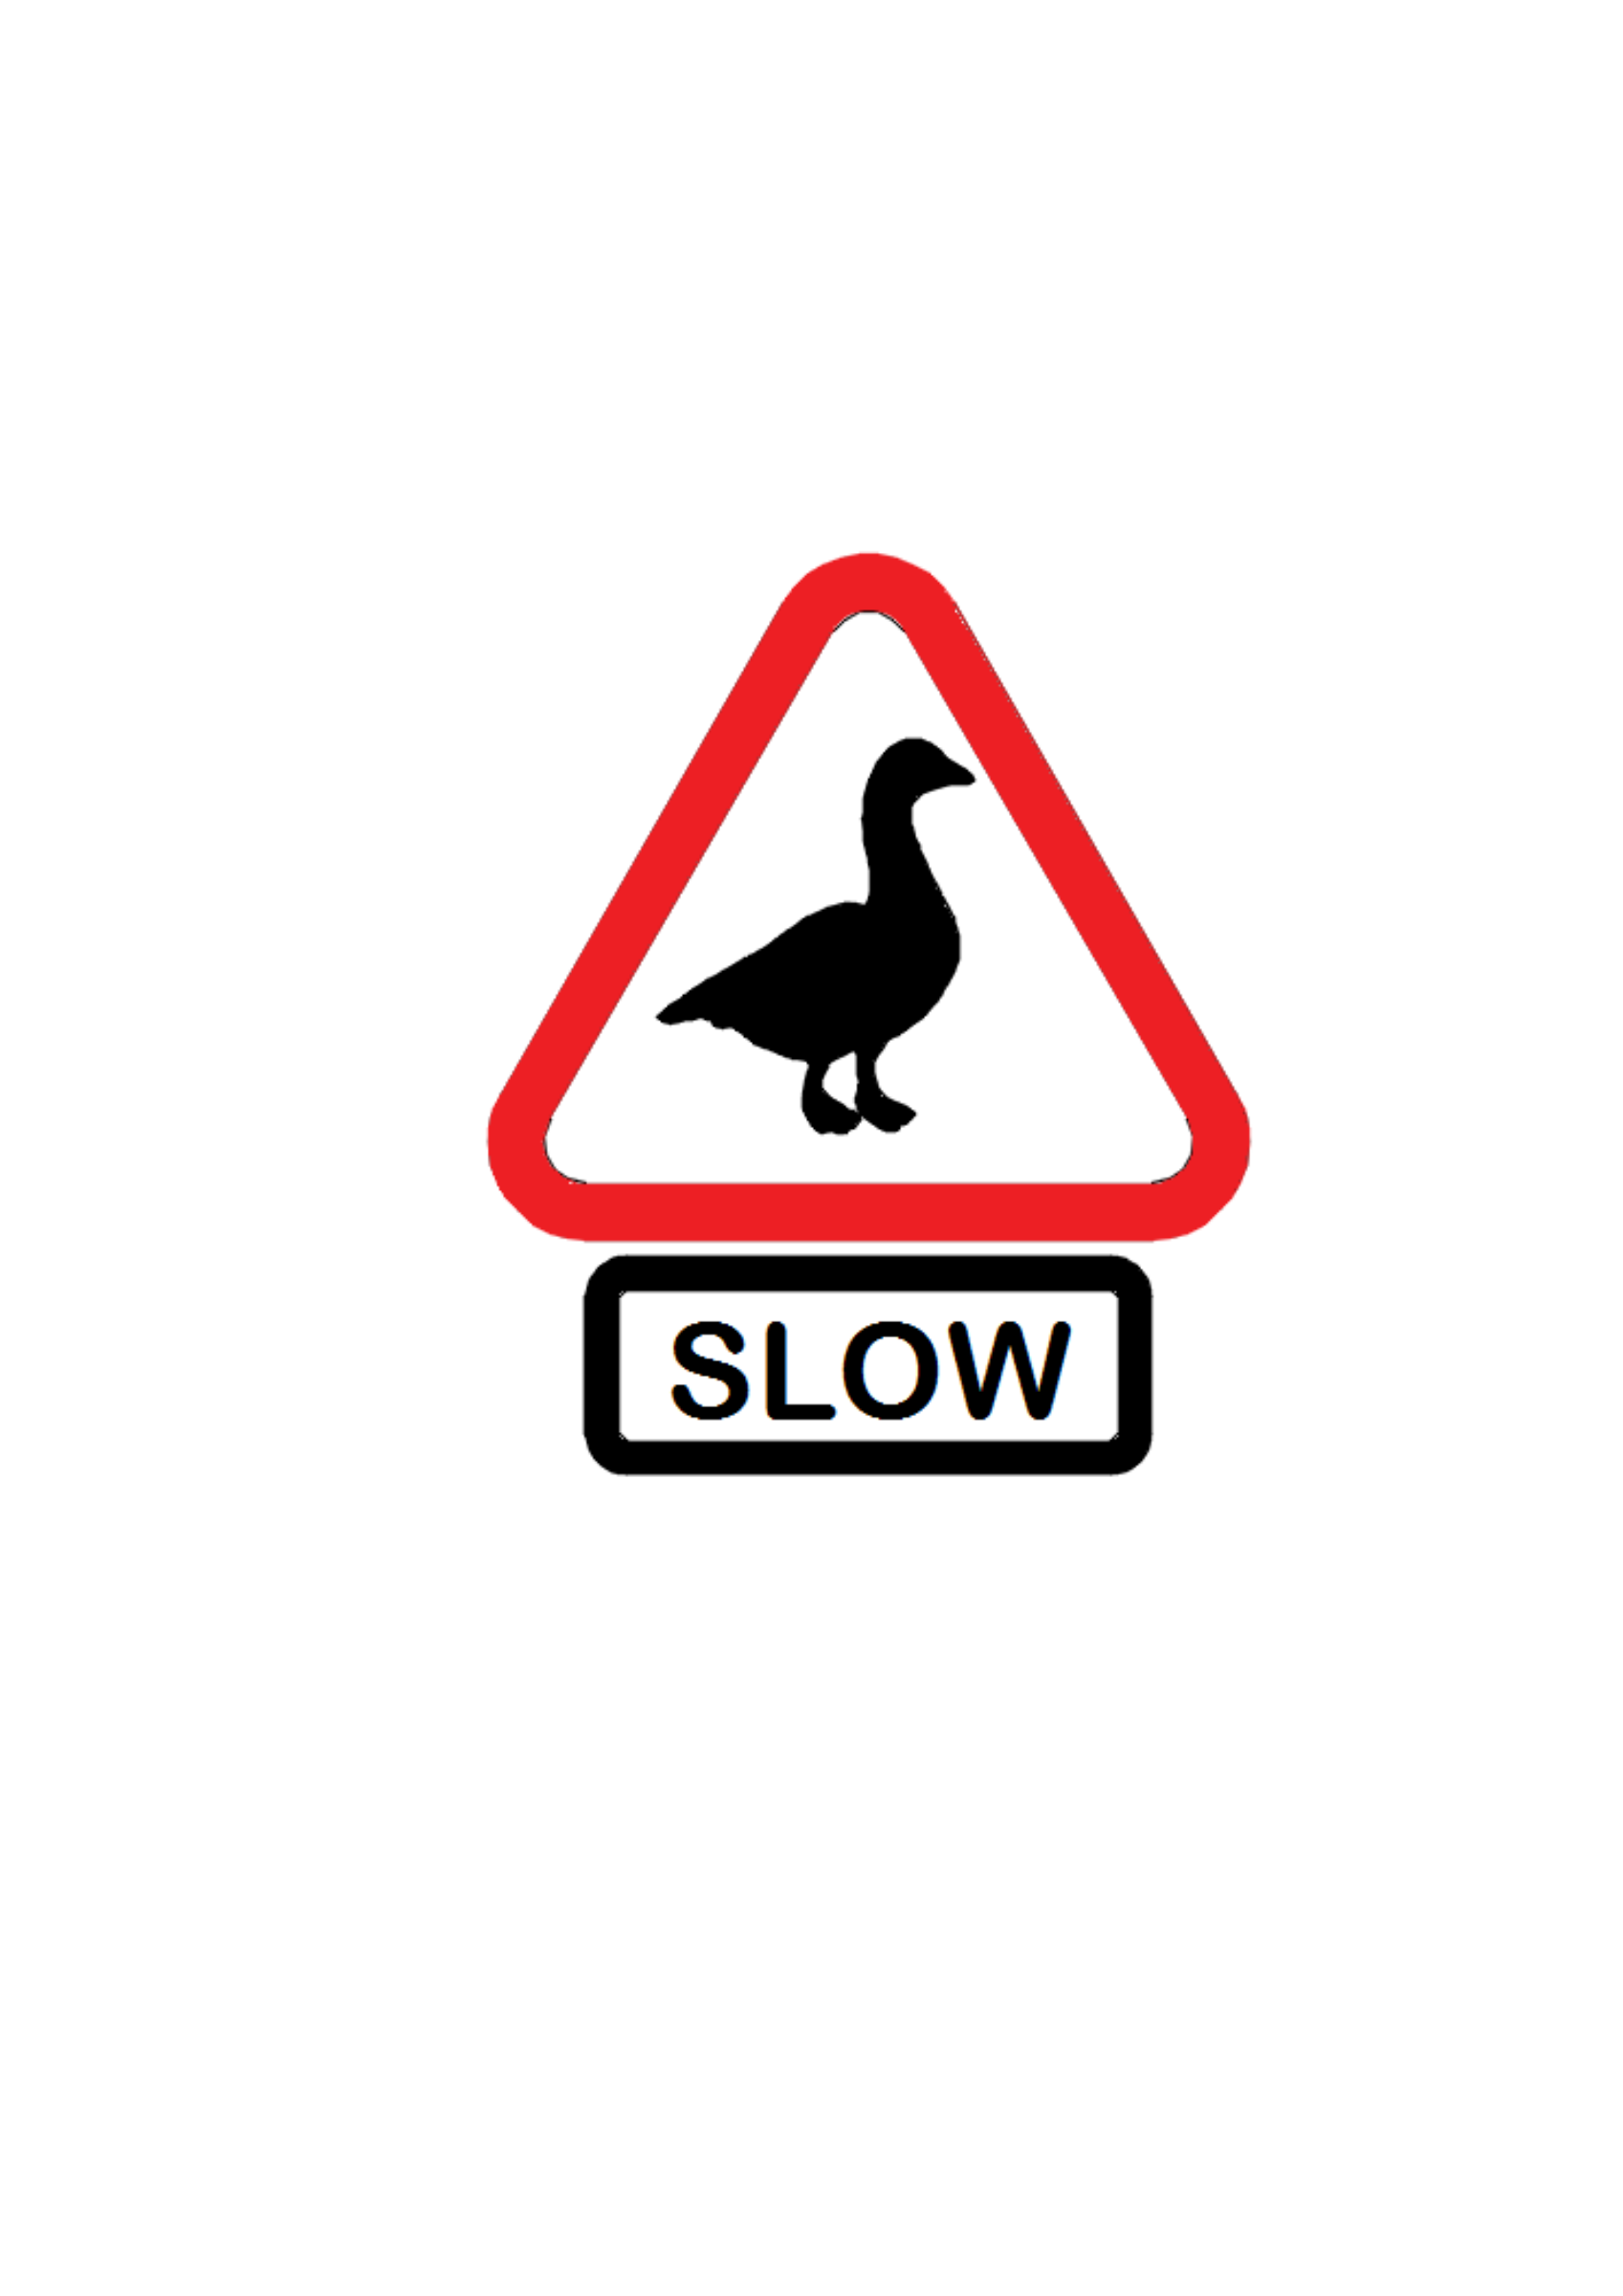 geese - slow by RedKiteDesigns(Radnor)Ltd